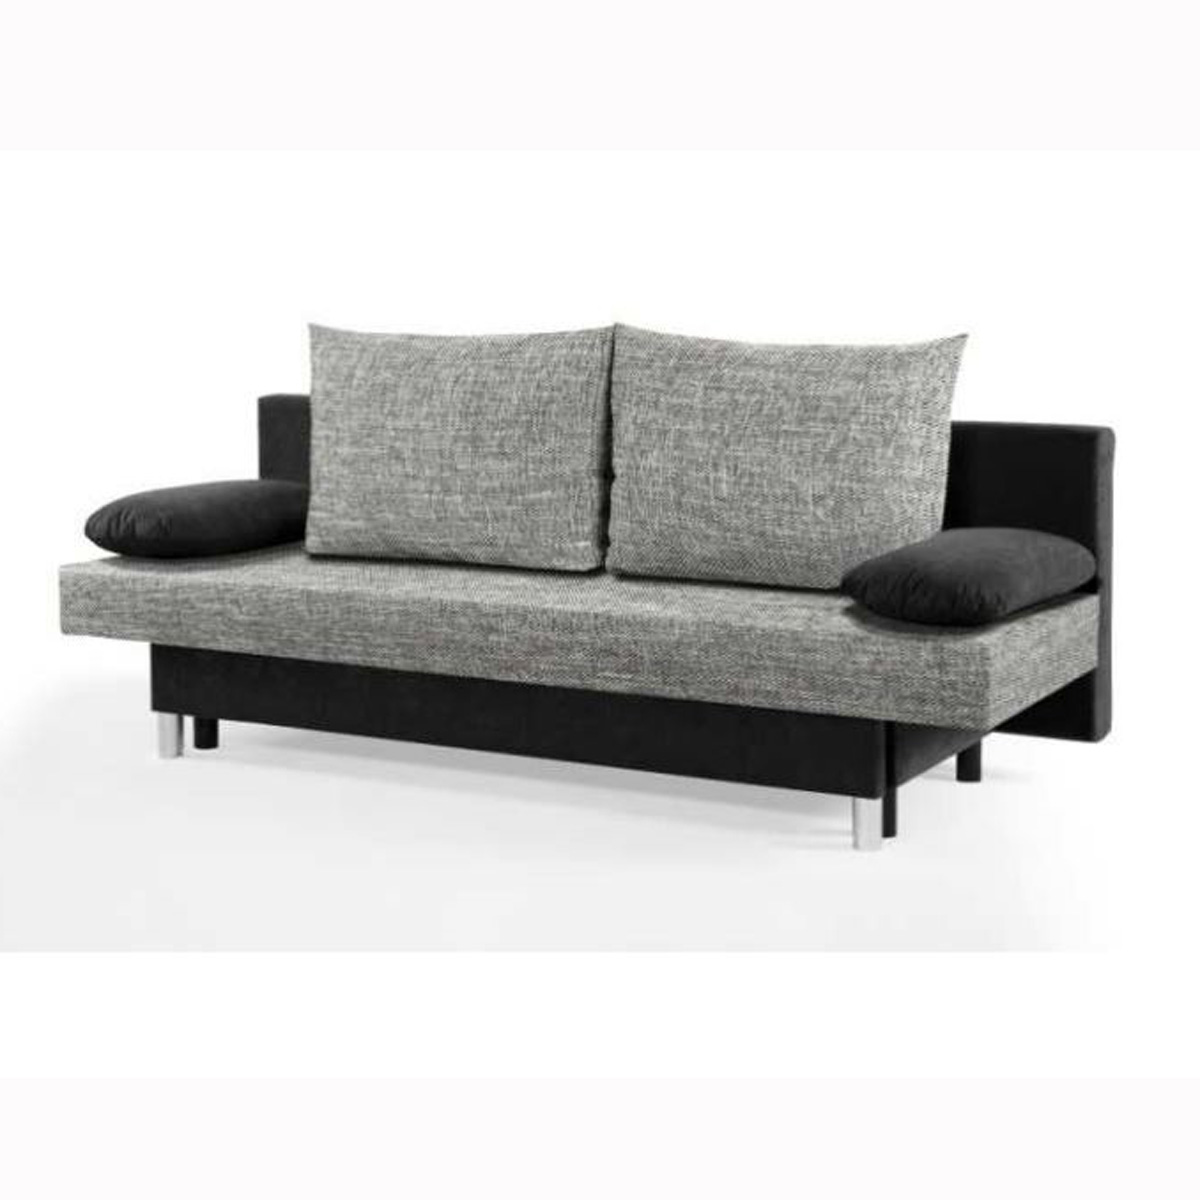 schlafsofa jelly sofa mit bettkasten in schwarz und grau ebay. Black Bedroom Furniture Sets. Home Design Ideas